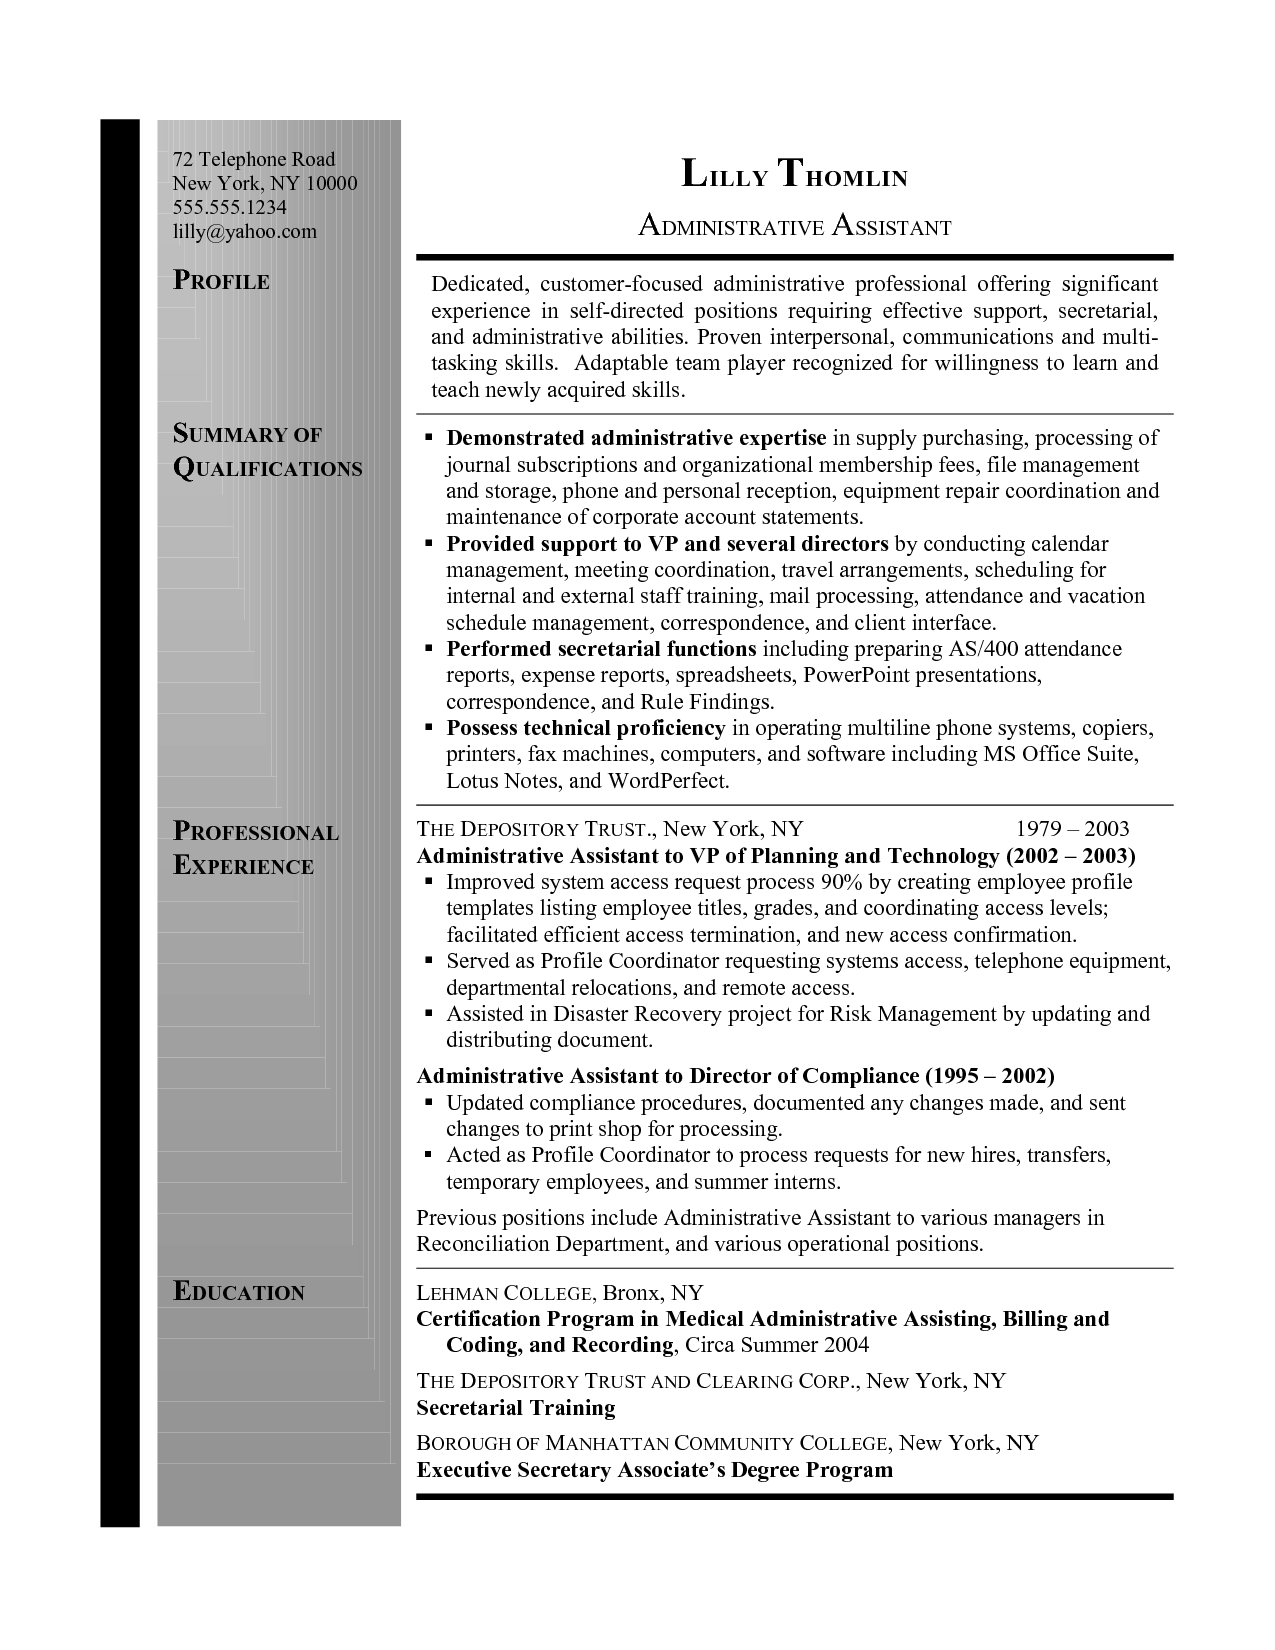 Executive Summary Examples For Resume Resume Summary Administrative Assistant Resume Info